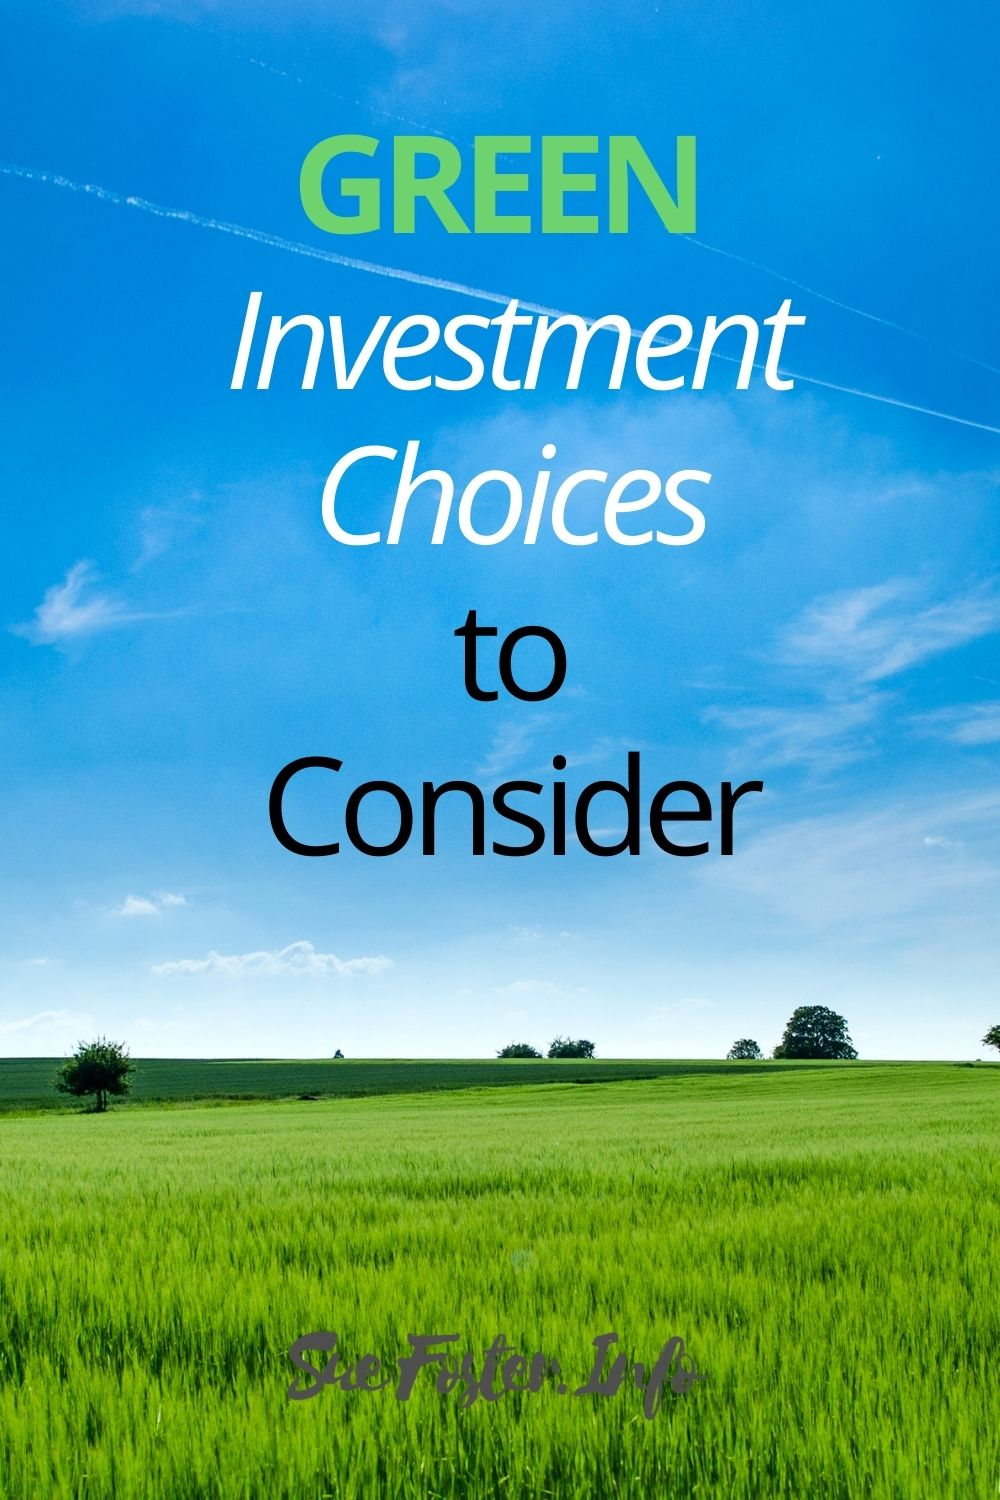 Green investment choices to consider